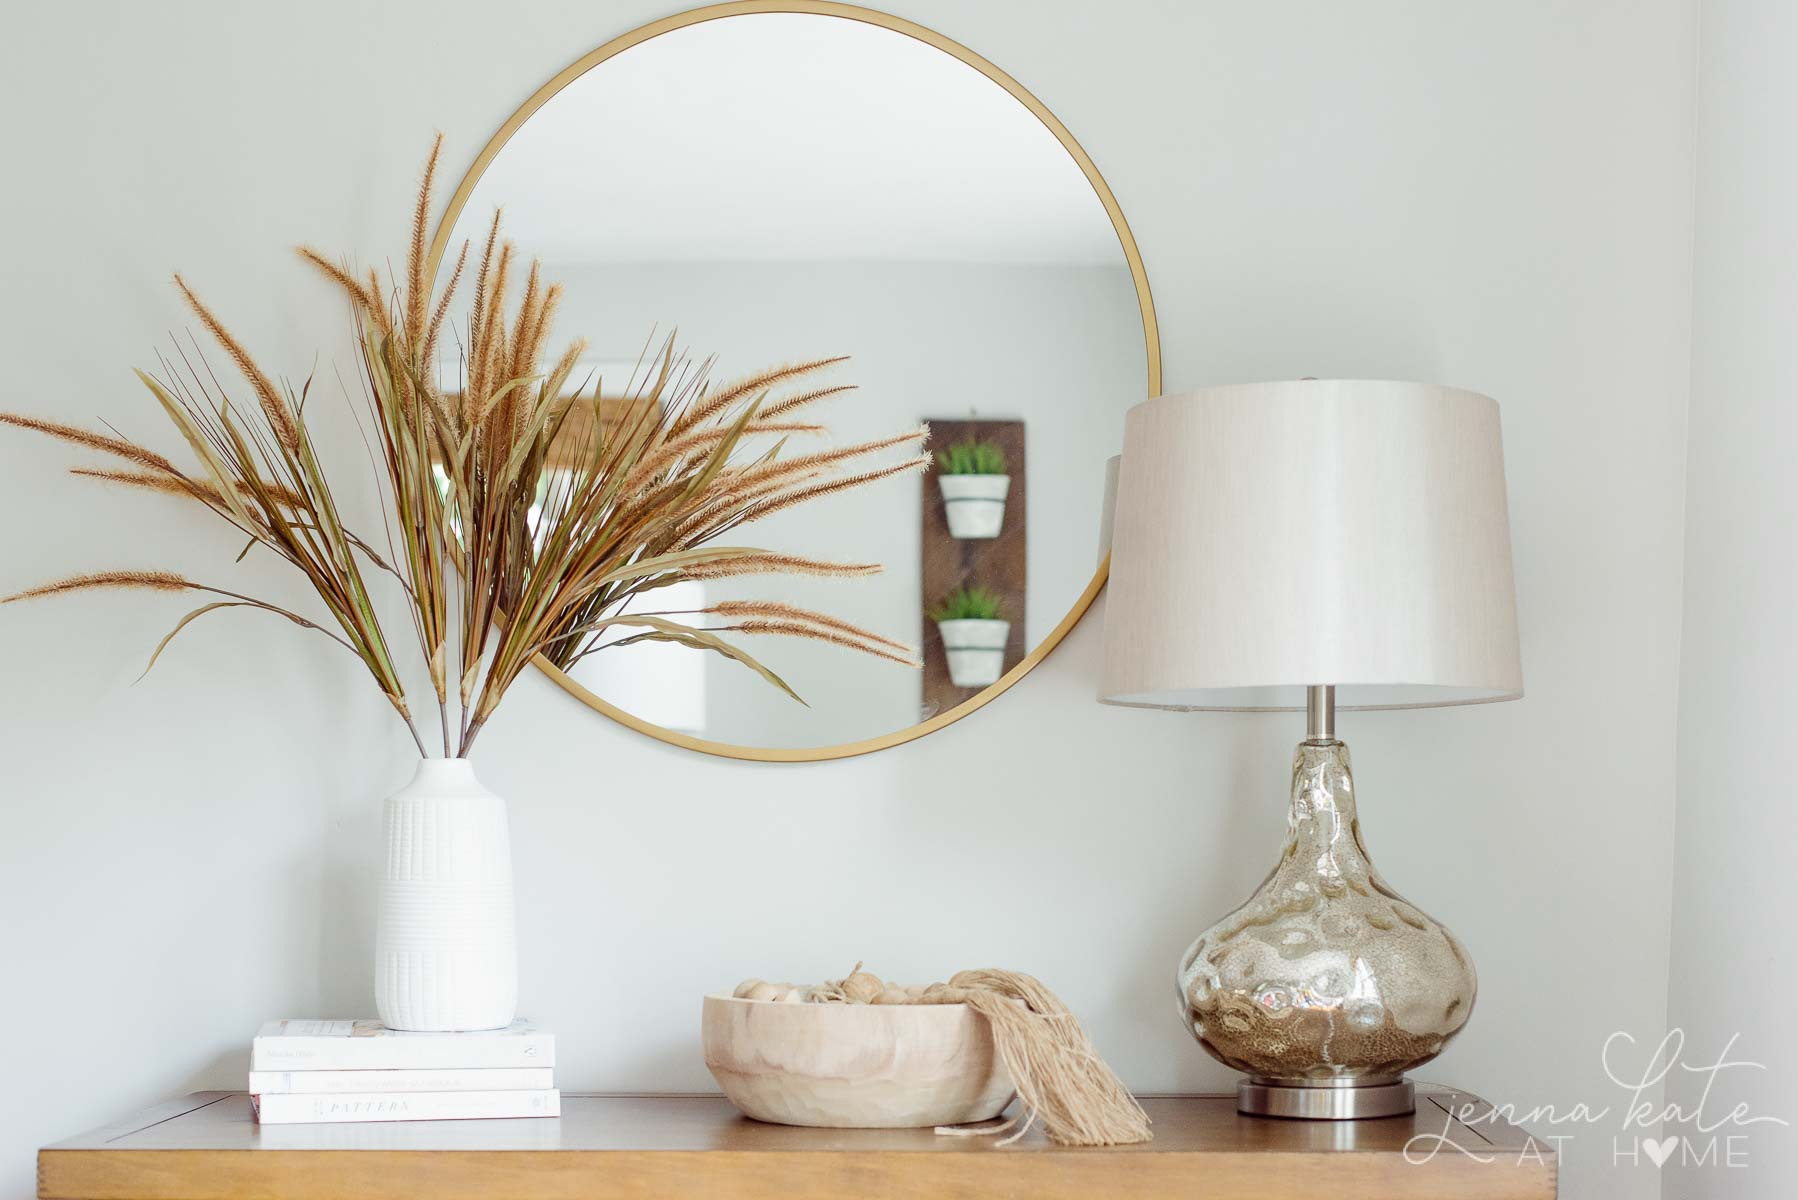 simple fall vignette with dried grass in a vase, a bowl with wooden beads and a mercury glass lamp